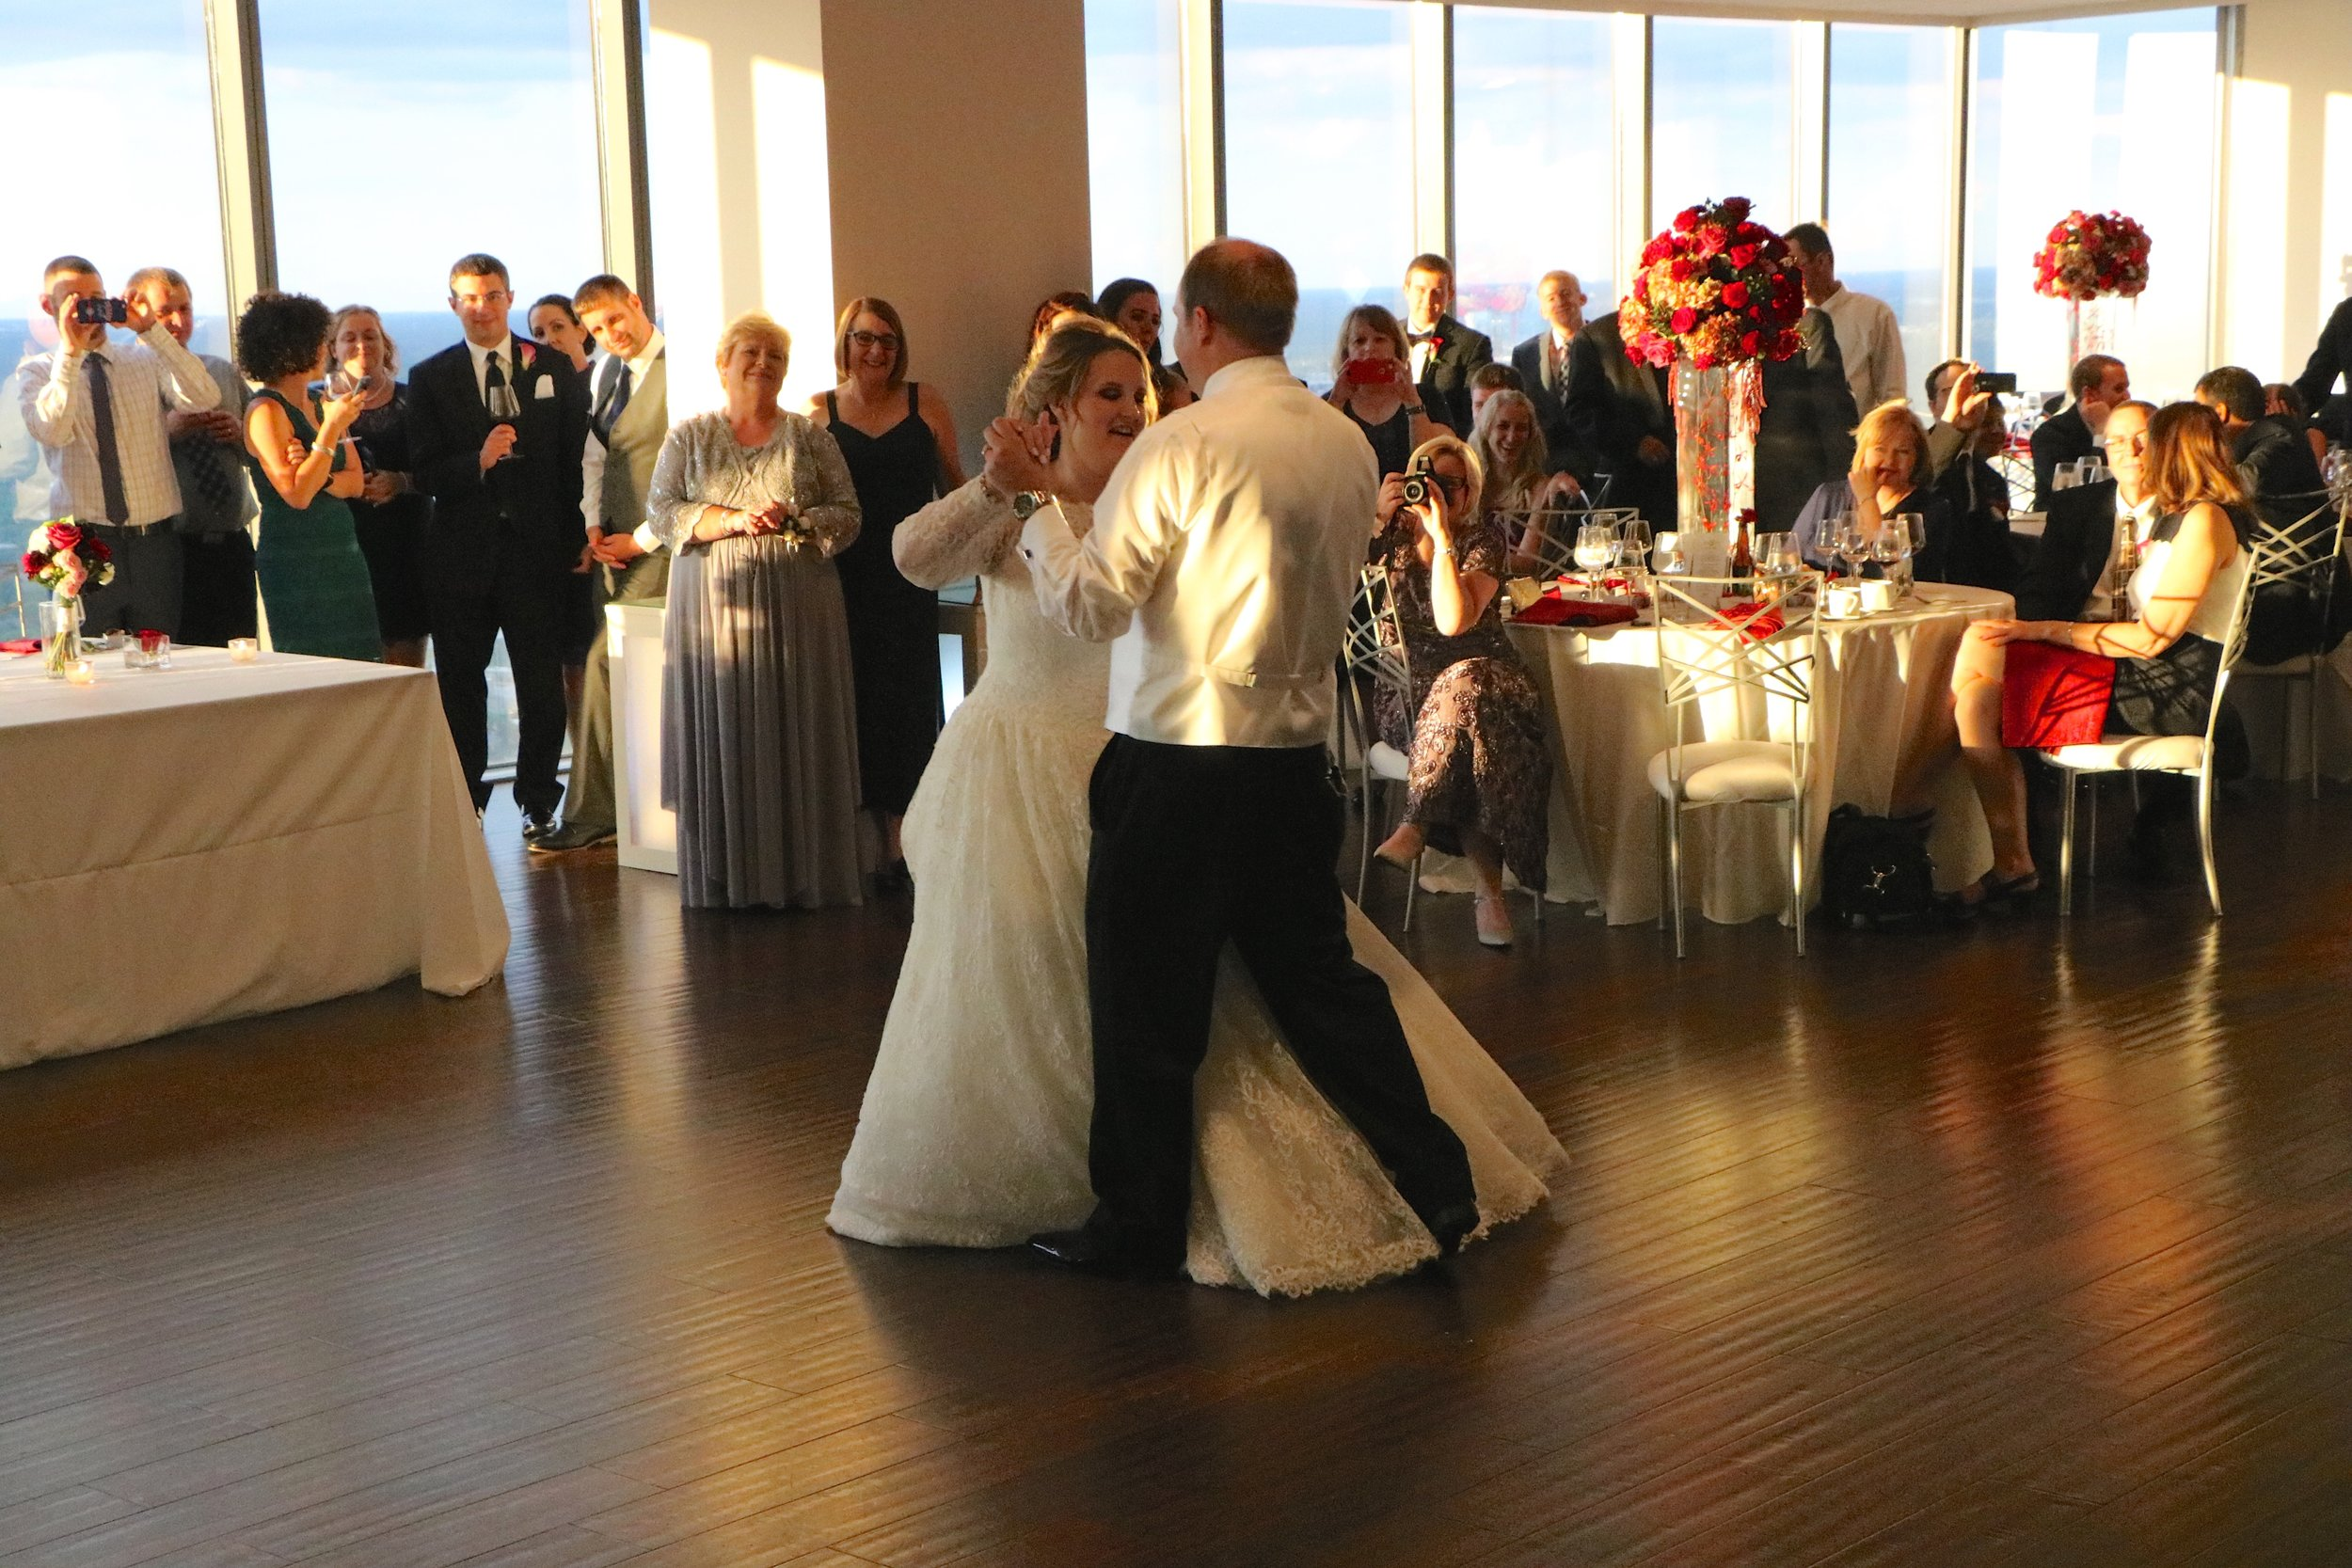 """Their 1st dance choreographed to """"The Way You Look Tonight"""" by Frank Sinatra"""